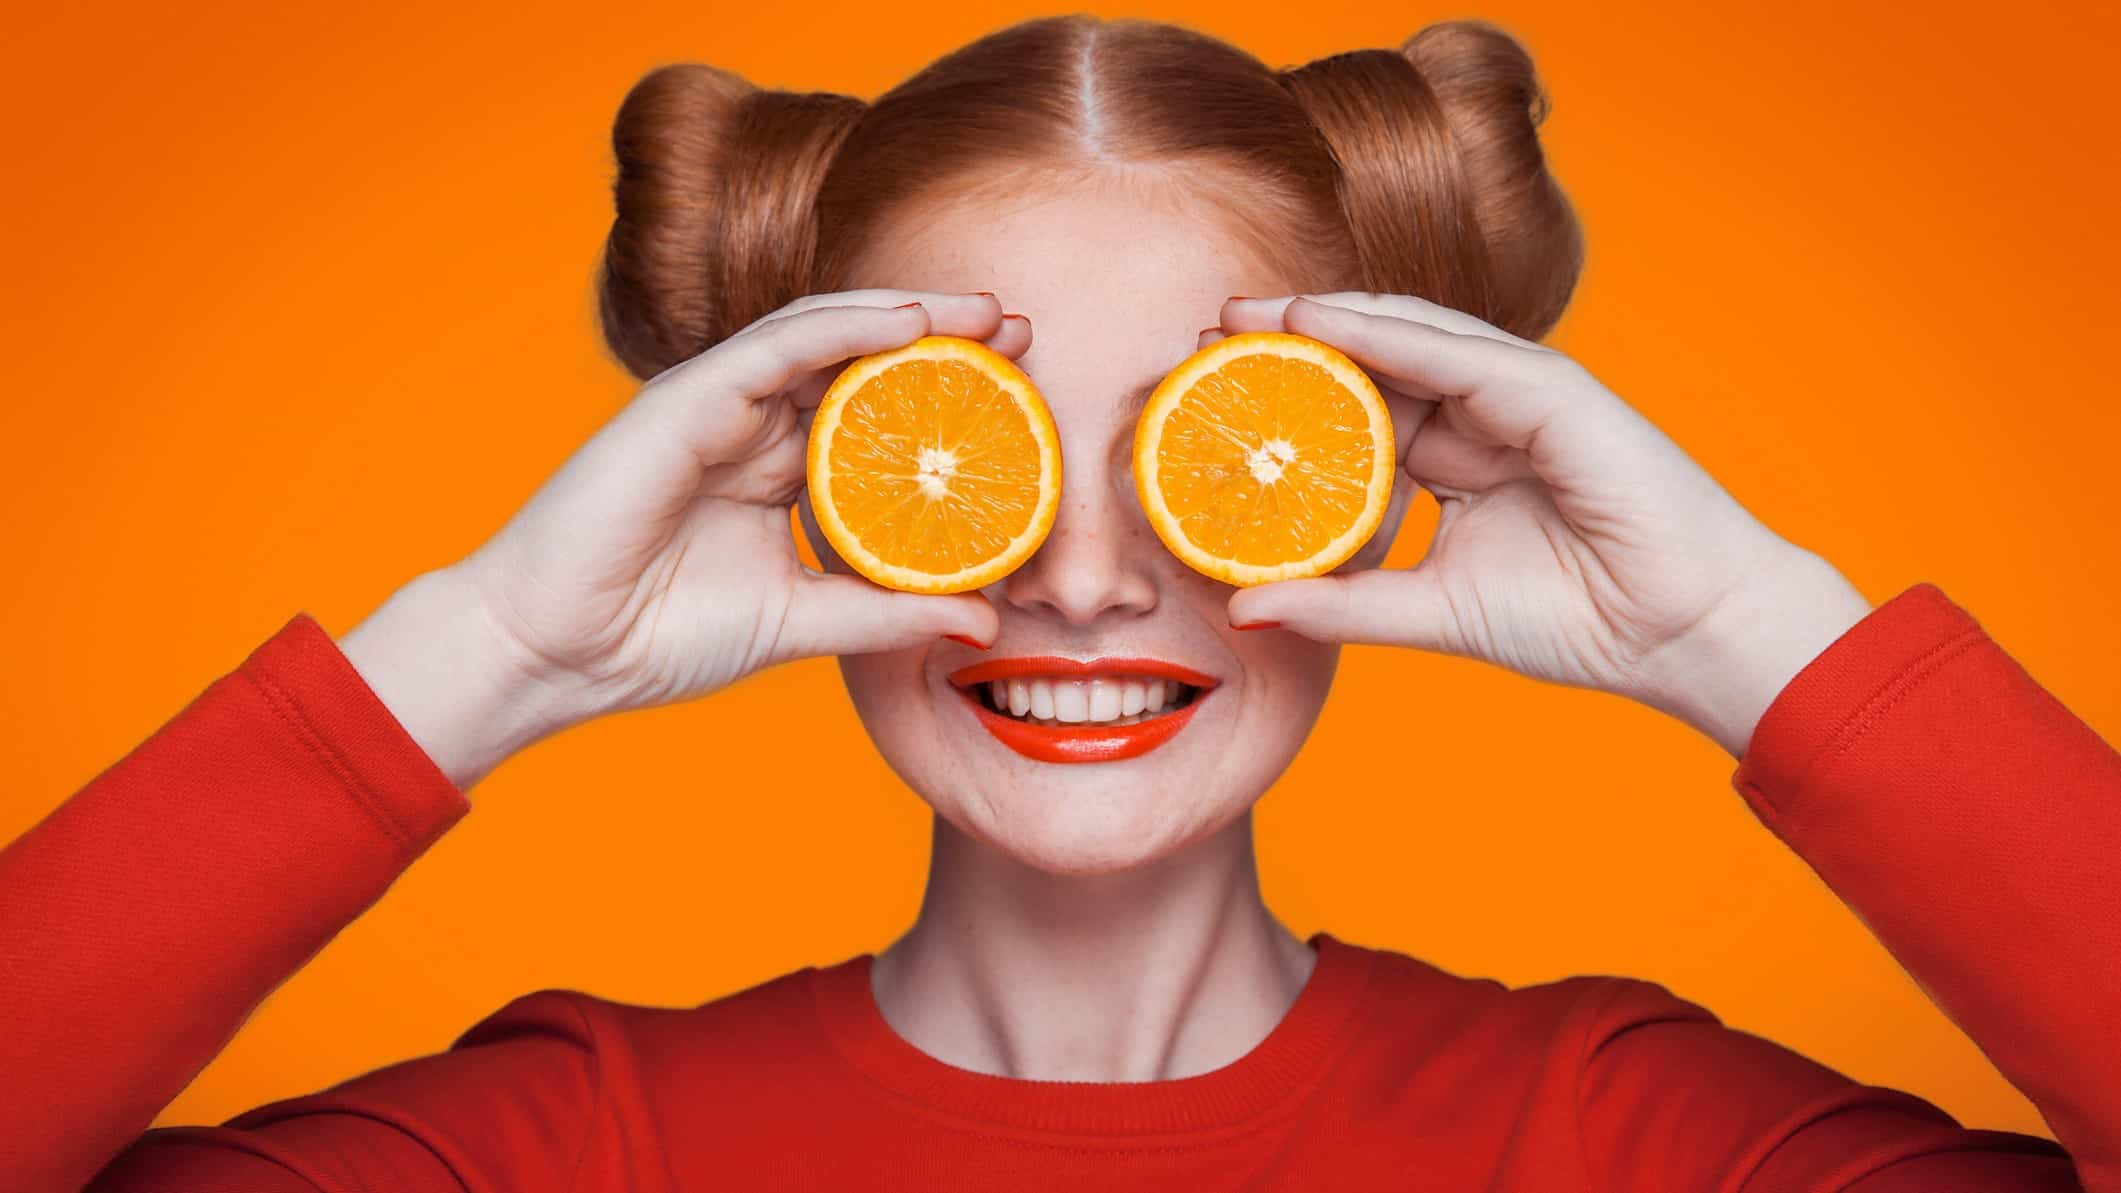 A smiling woman holds slices of orange to her eyes, indicating share price rises for ASX commodity shares